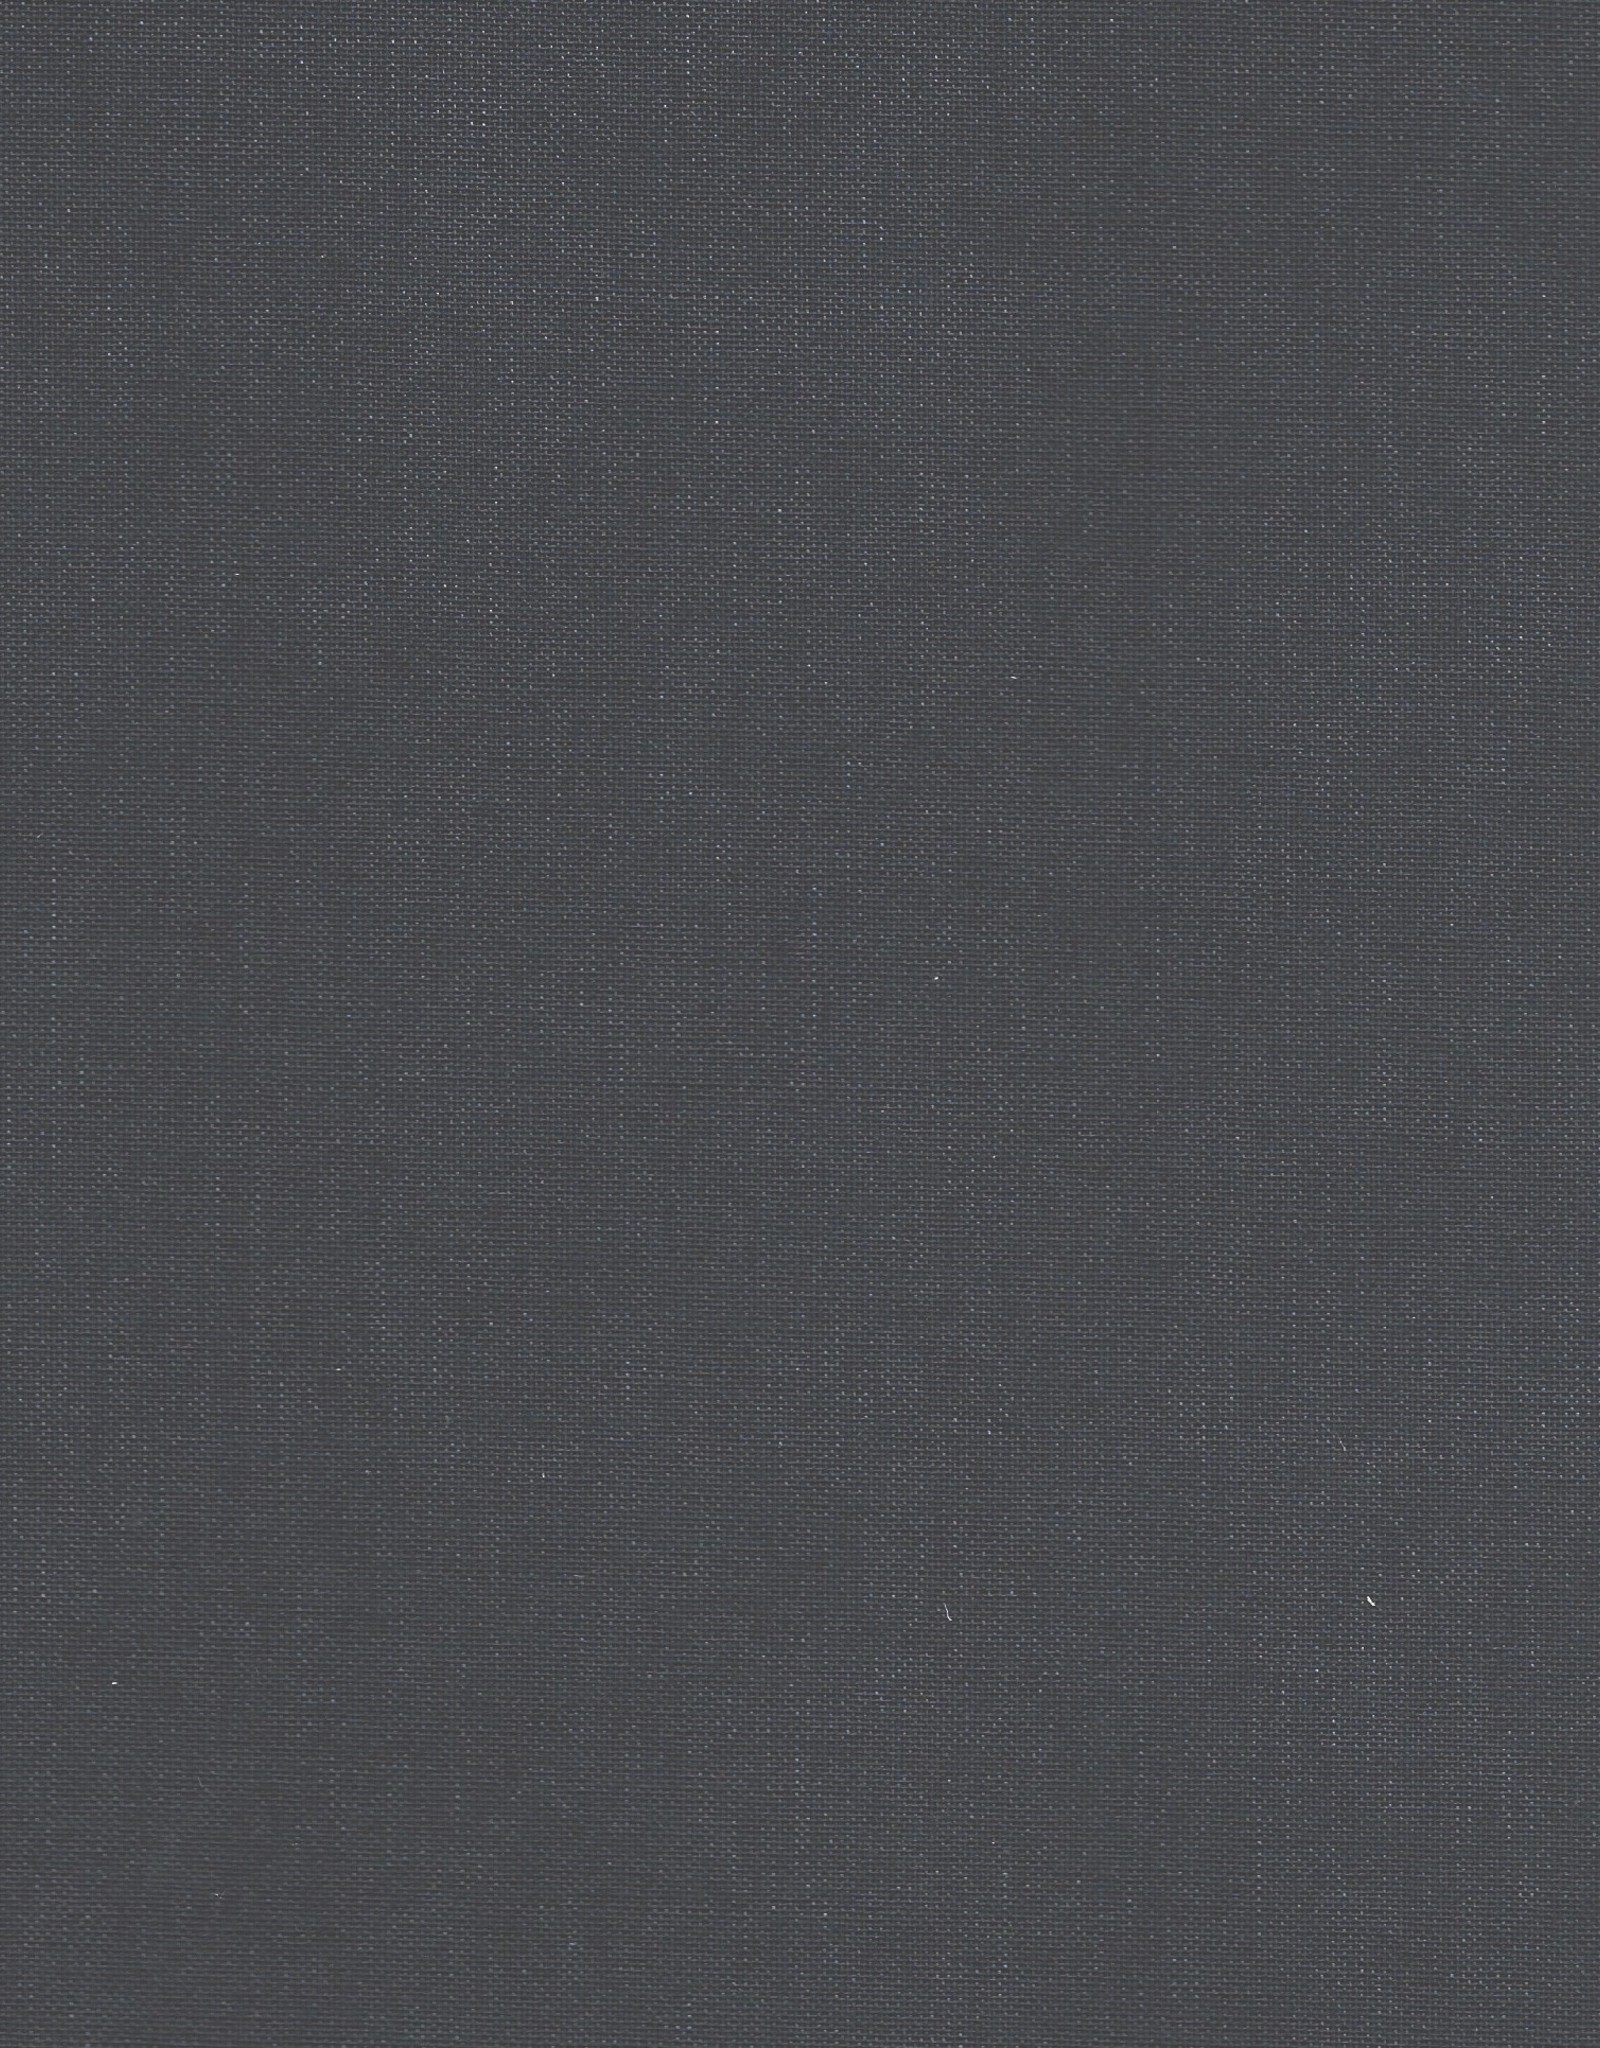 "Book Cloth Navy Blue, 17"" x 26"", 2 sheets, Acid Free, Rayon, Paper Backed"